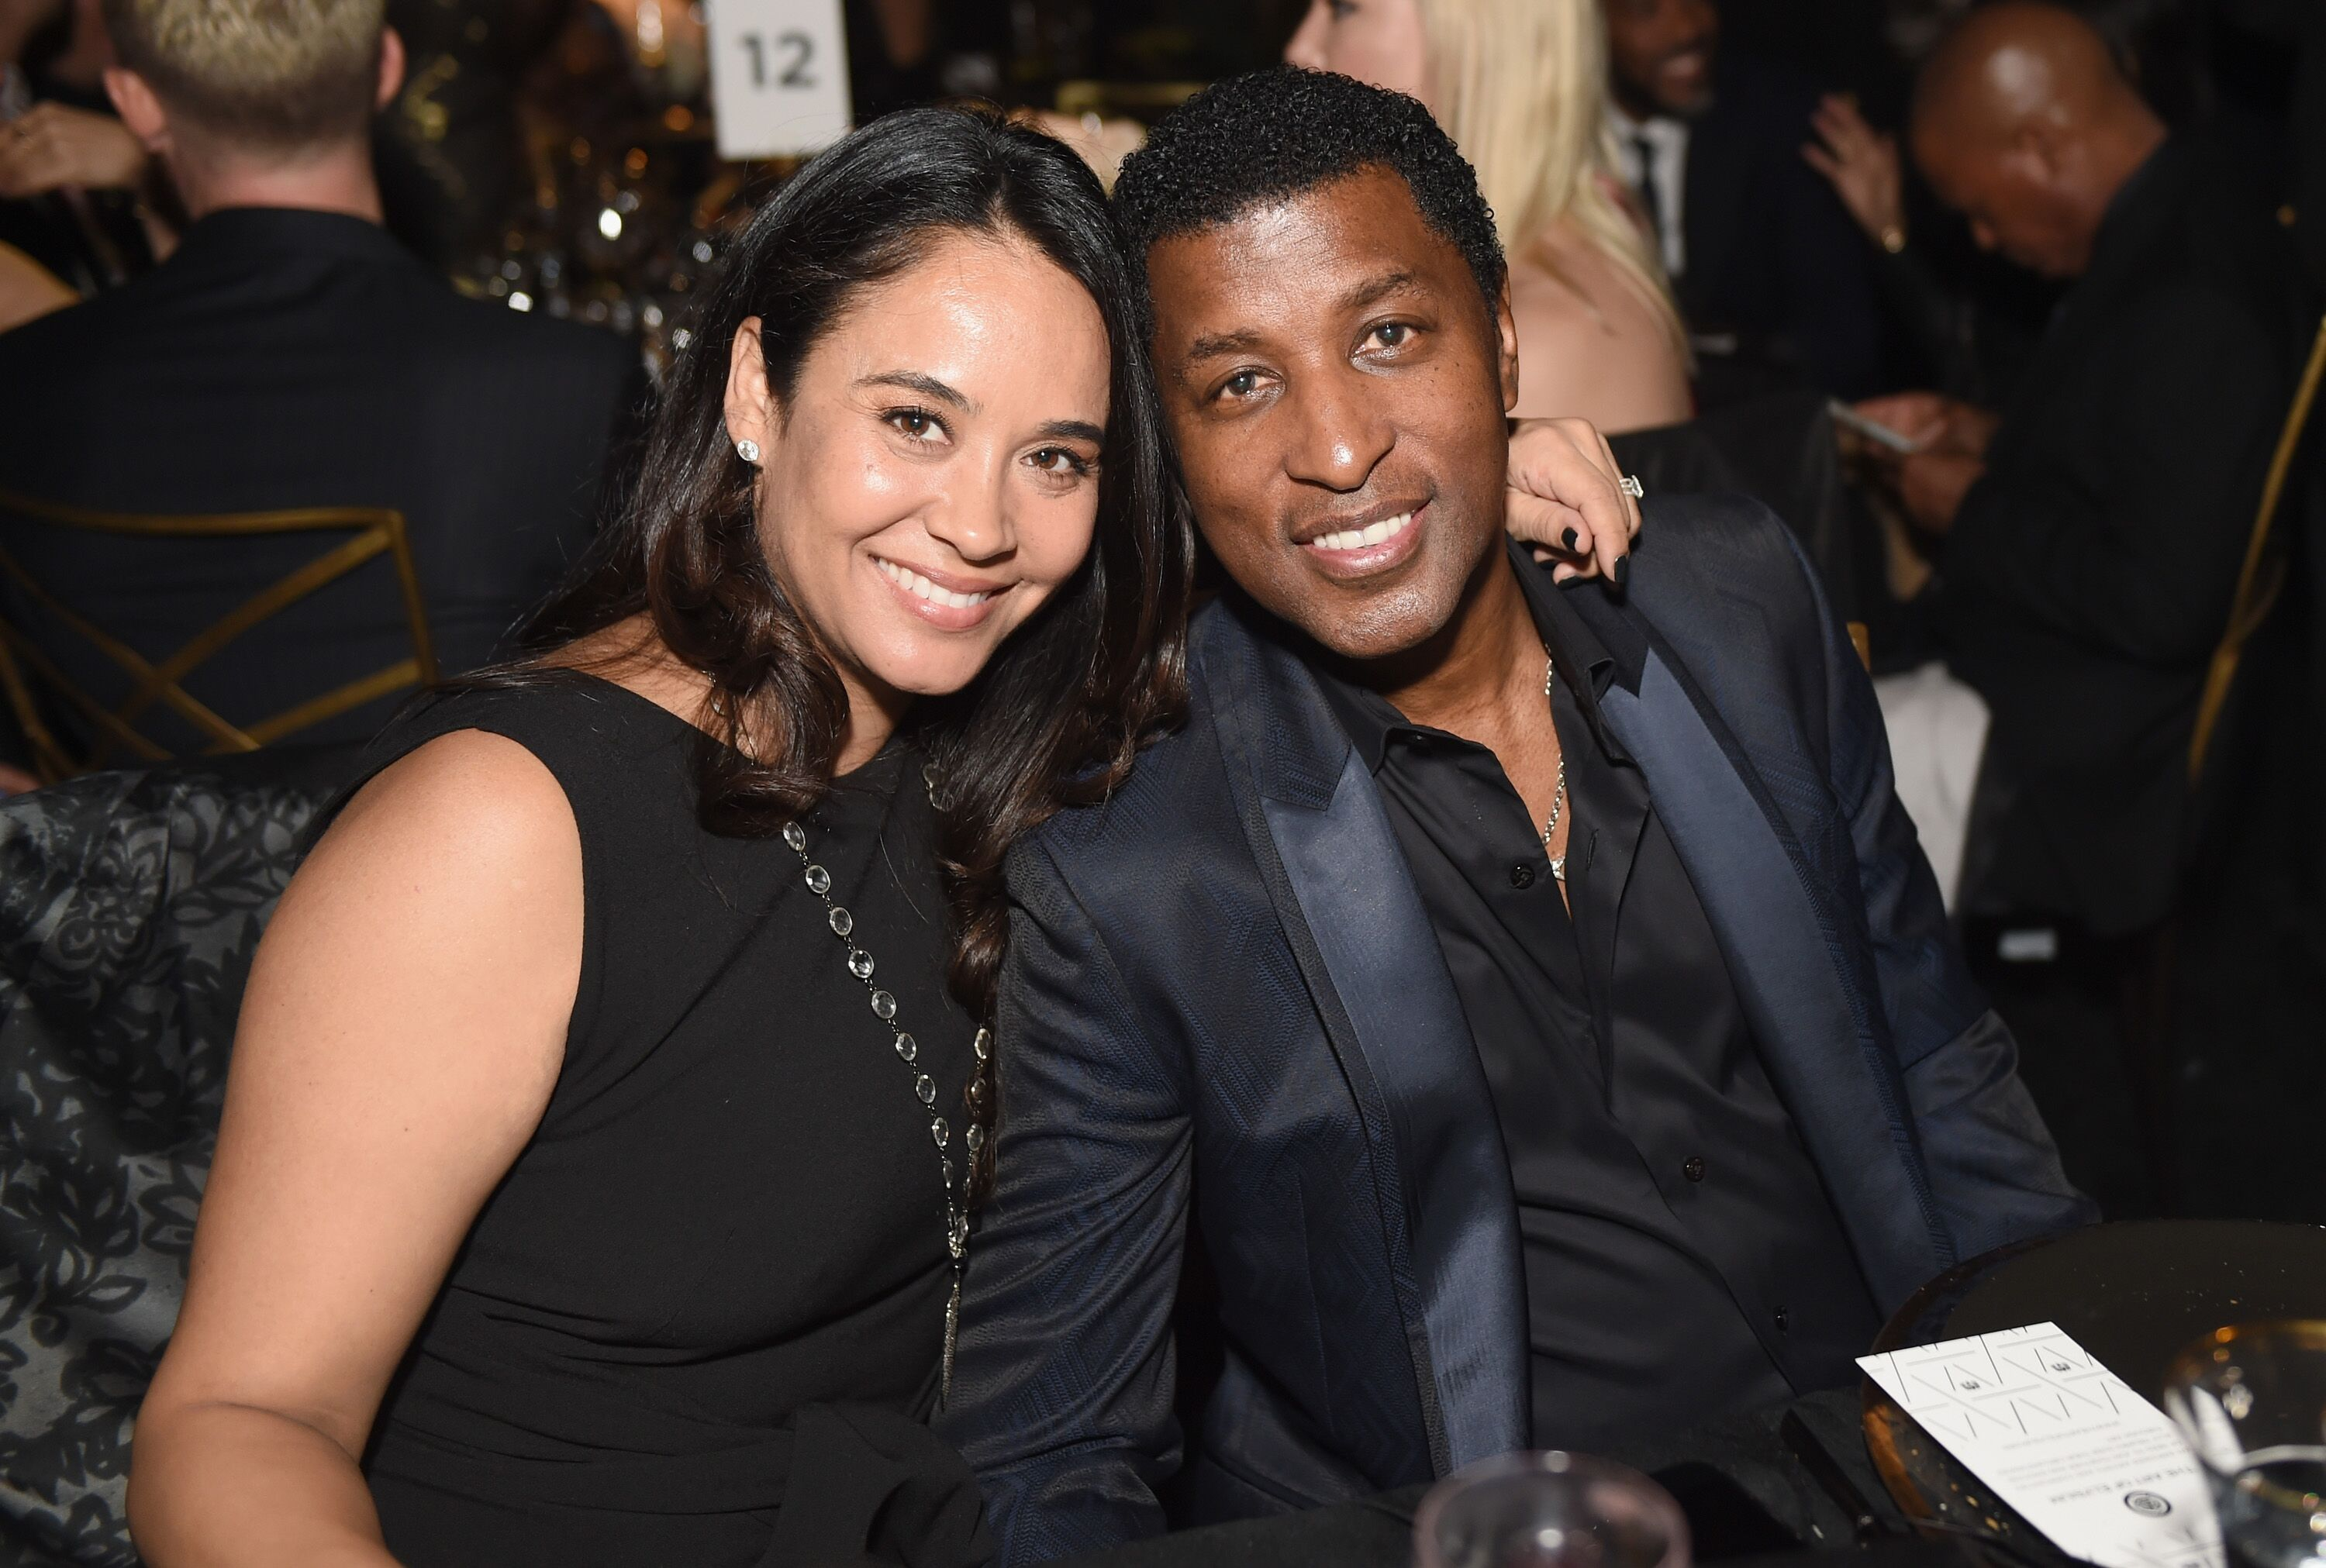 Nicole Pantenburg and Kenneth 'Babyface' Edmonds attend The Art of Elysium presents Stevie Wonder's HEAVEN - Celebrating the 10th Anniversary at Red Studios on January 7, 2017 in Los Angeles, California.| Source: Getty Images